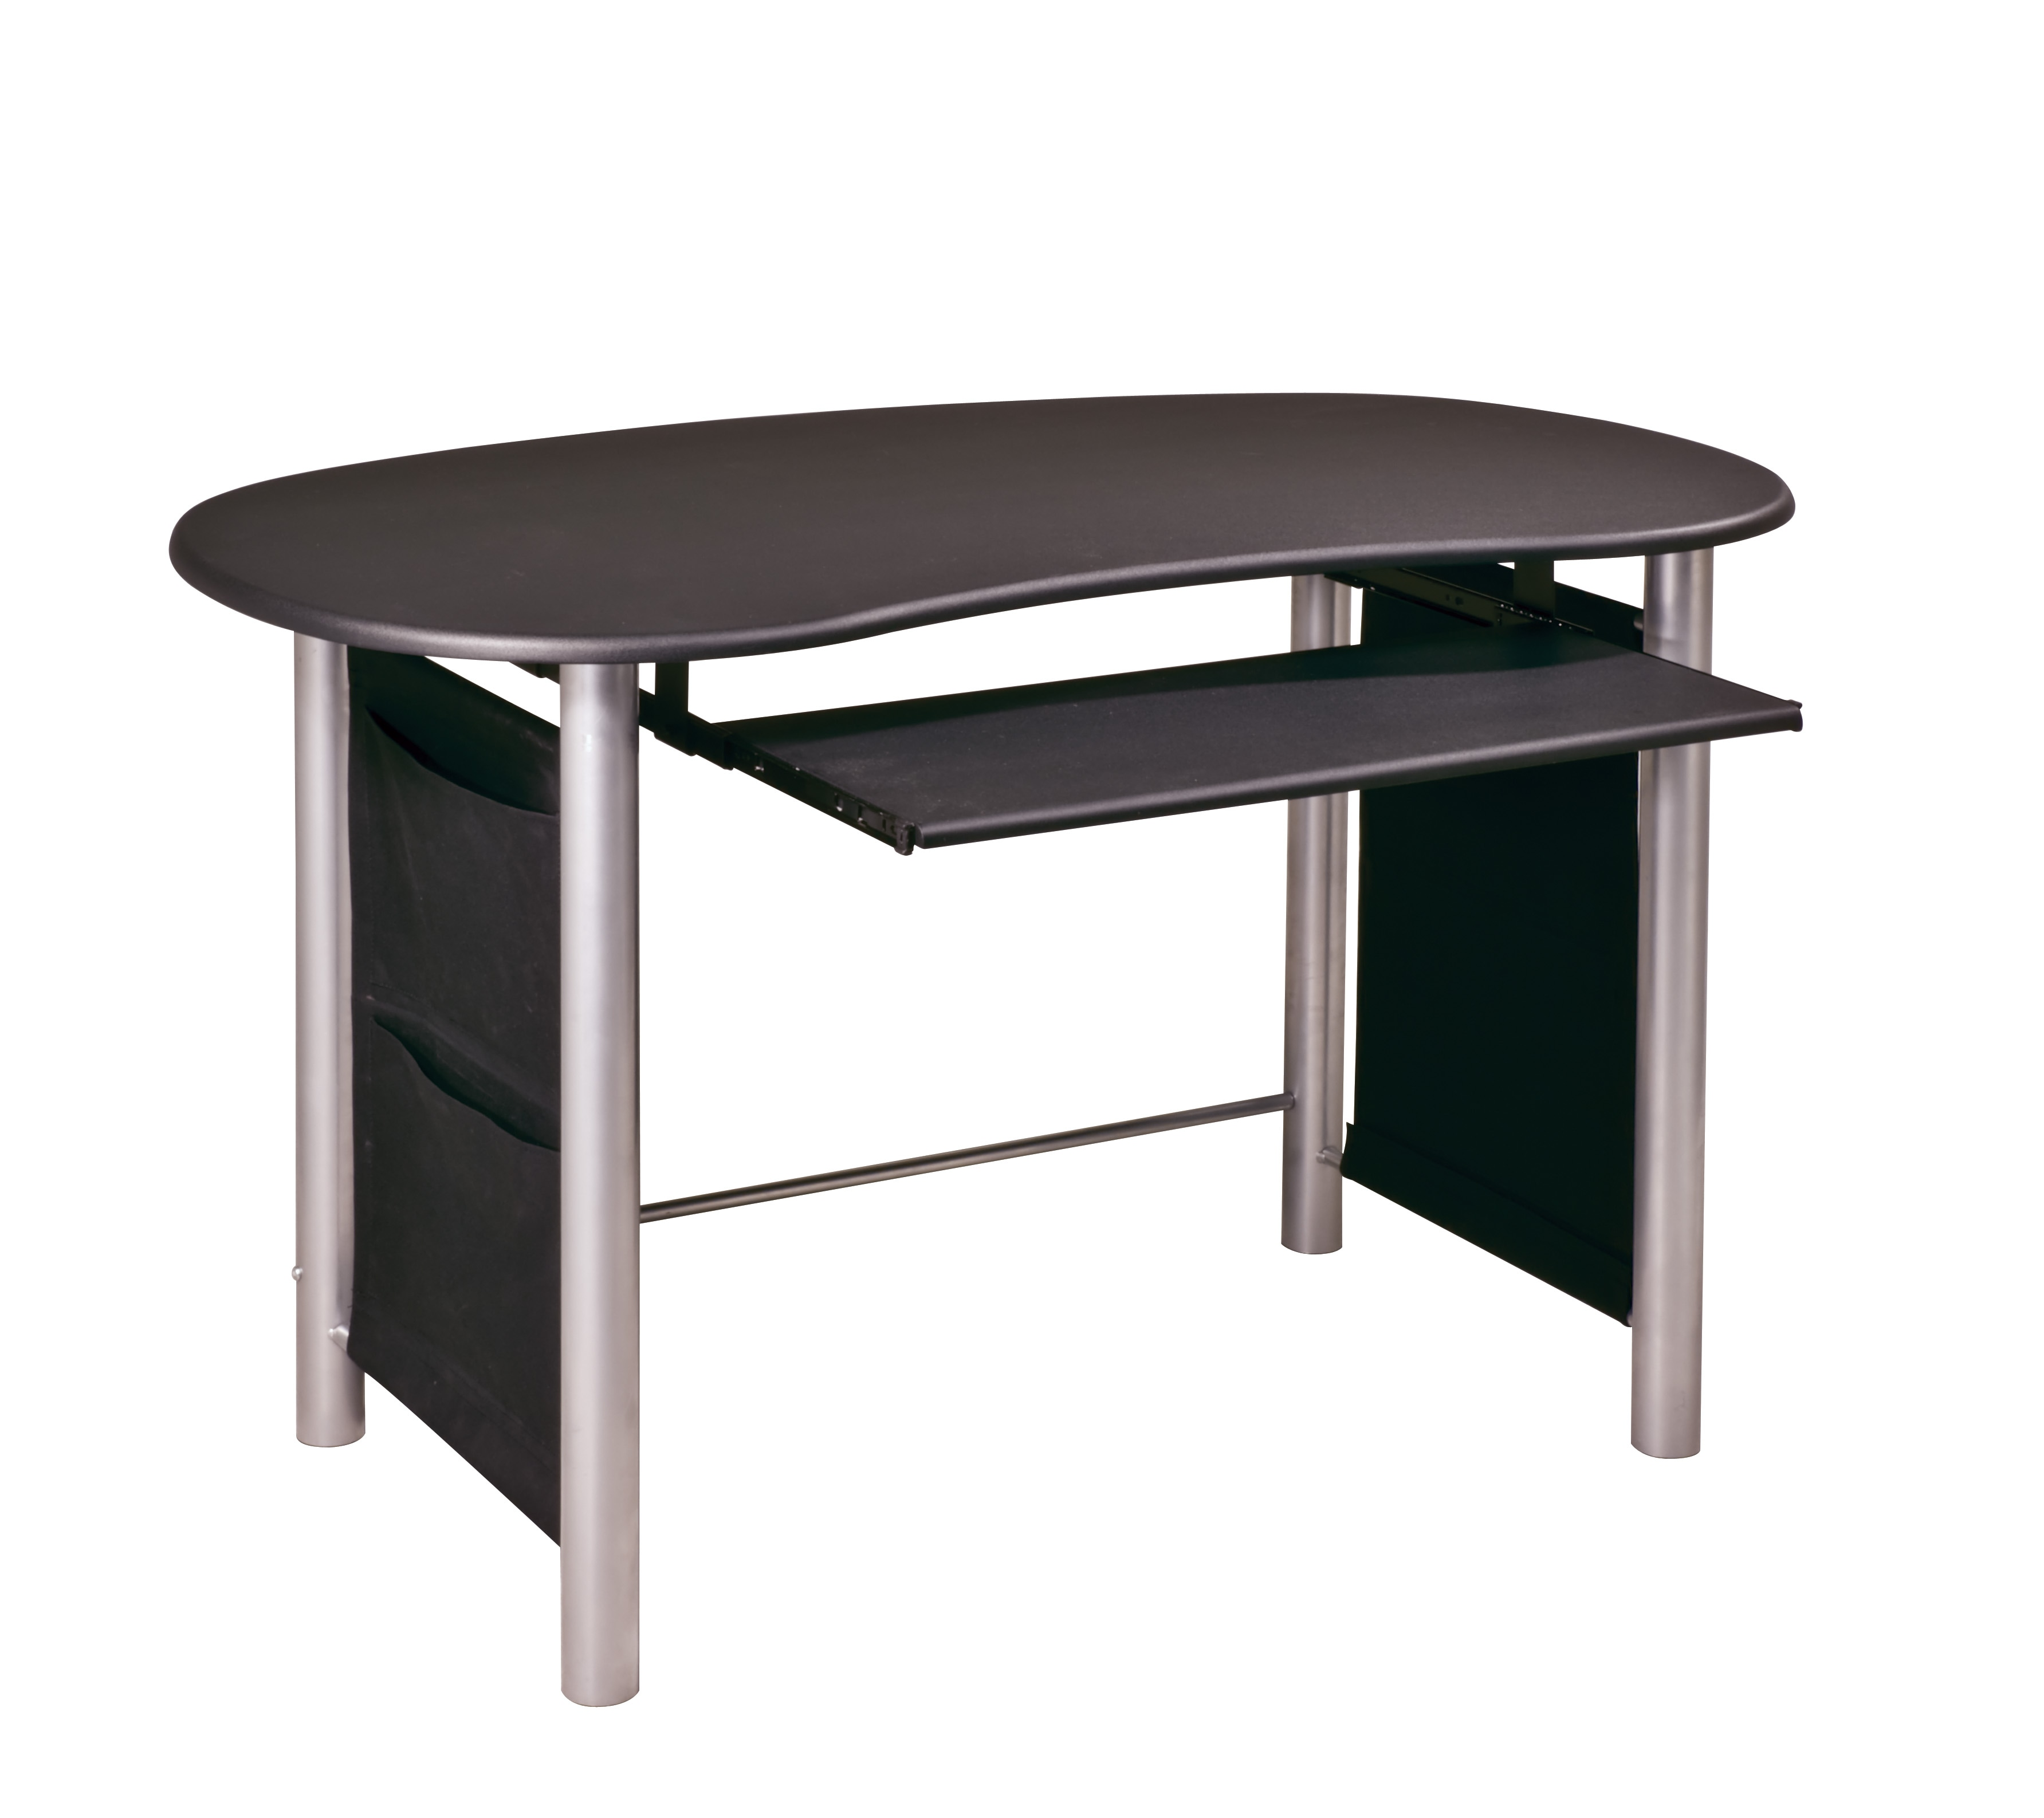 b1b248ac6a0 Shop Office Star Saturn Multi-Media Black with Silver Accents Computer Desk  - Free Shipping Today - Overstock - 3725532